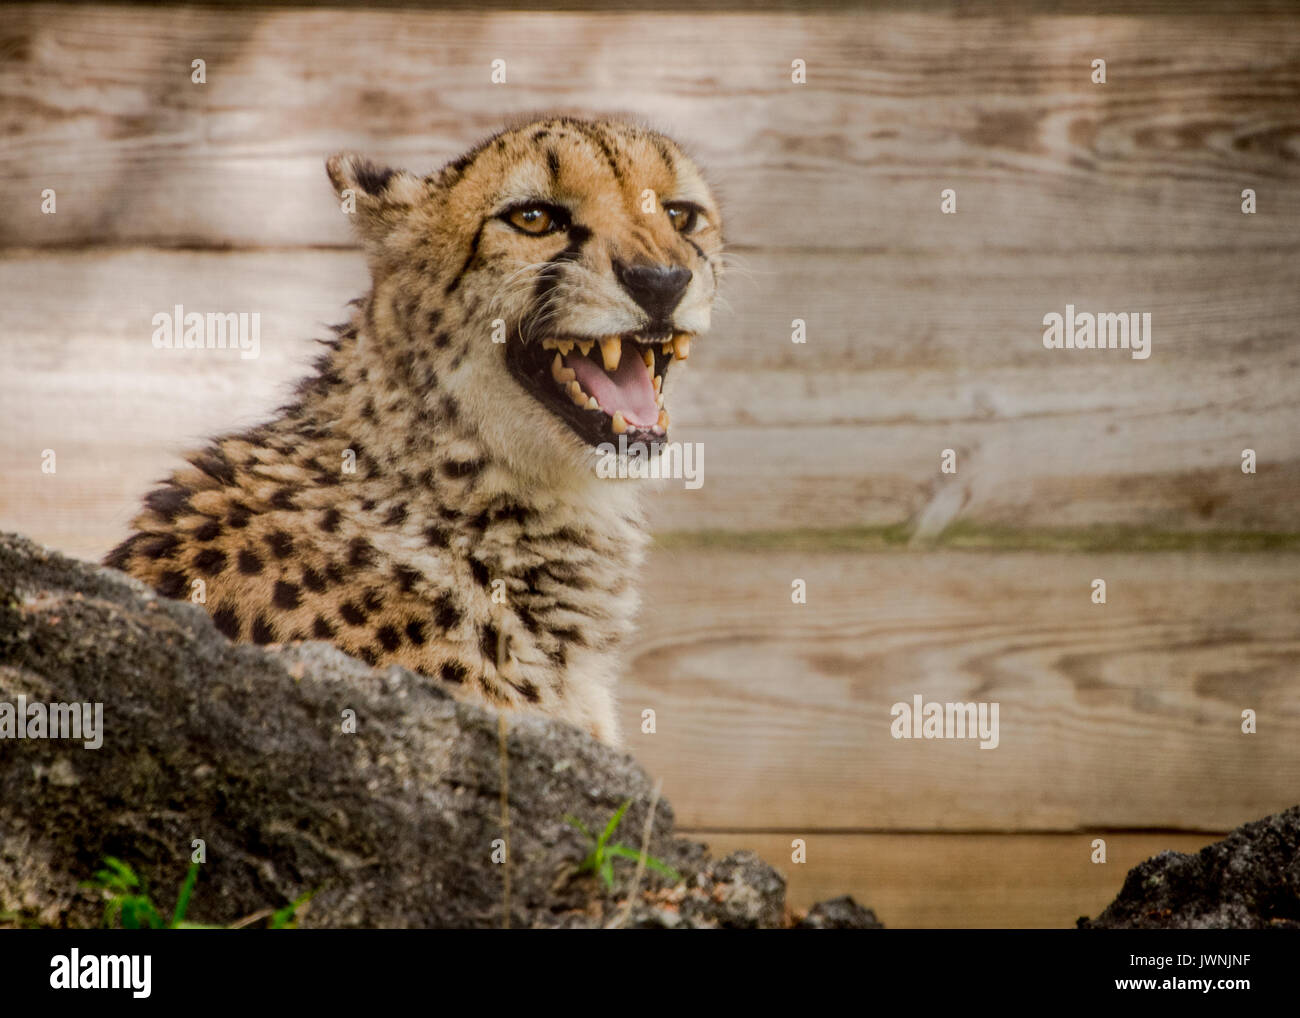 Cheetah in captivity in a zoo exhibit snarling at the camera from behind a rock against a wood board background - Stock Image